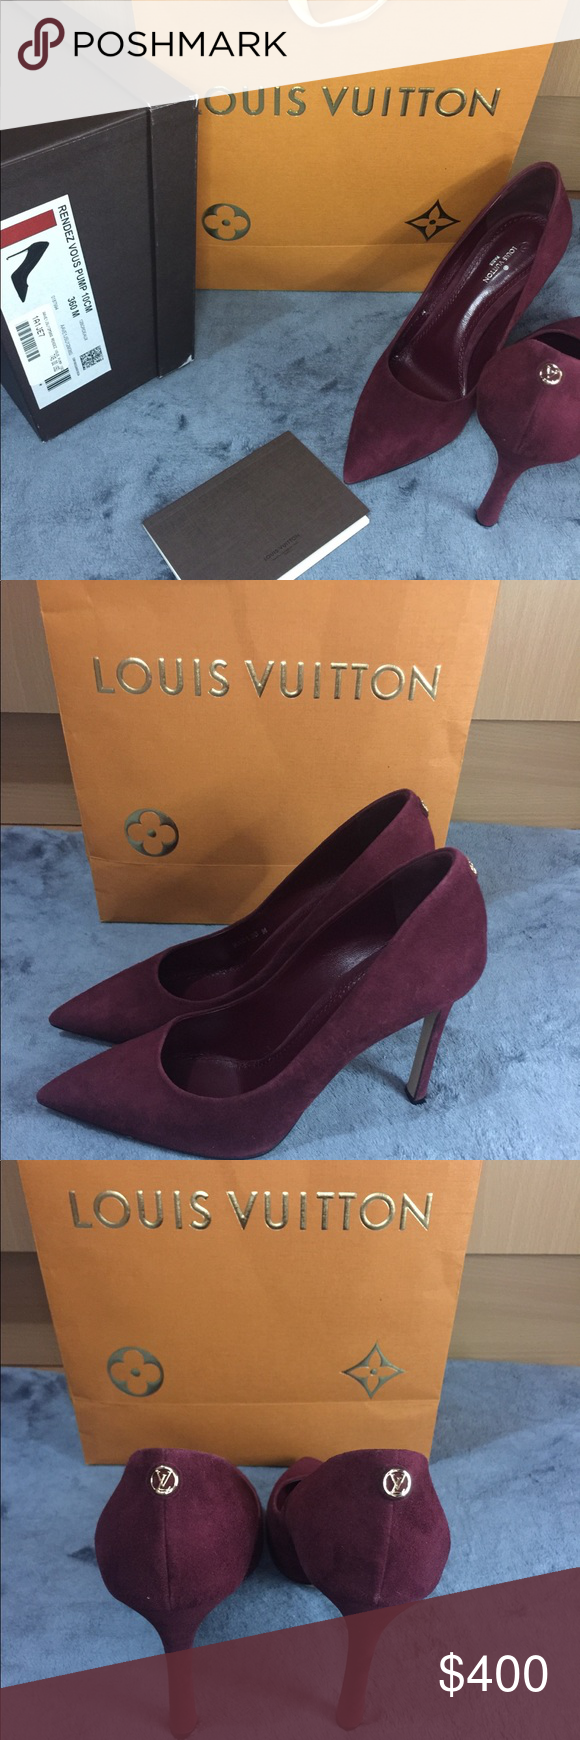 f0f18dc92c 👠Louis Vuitton Rendez vous pump heels 👠 Beautiful Burgundy Louis ...